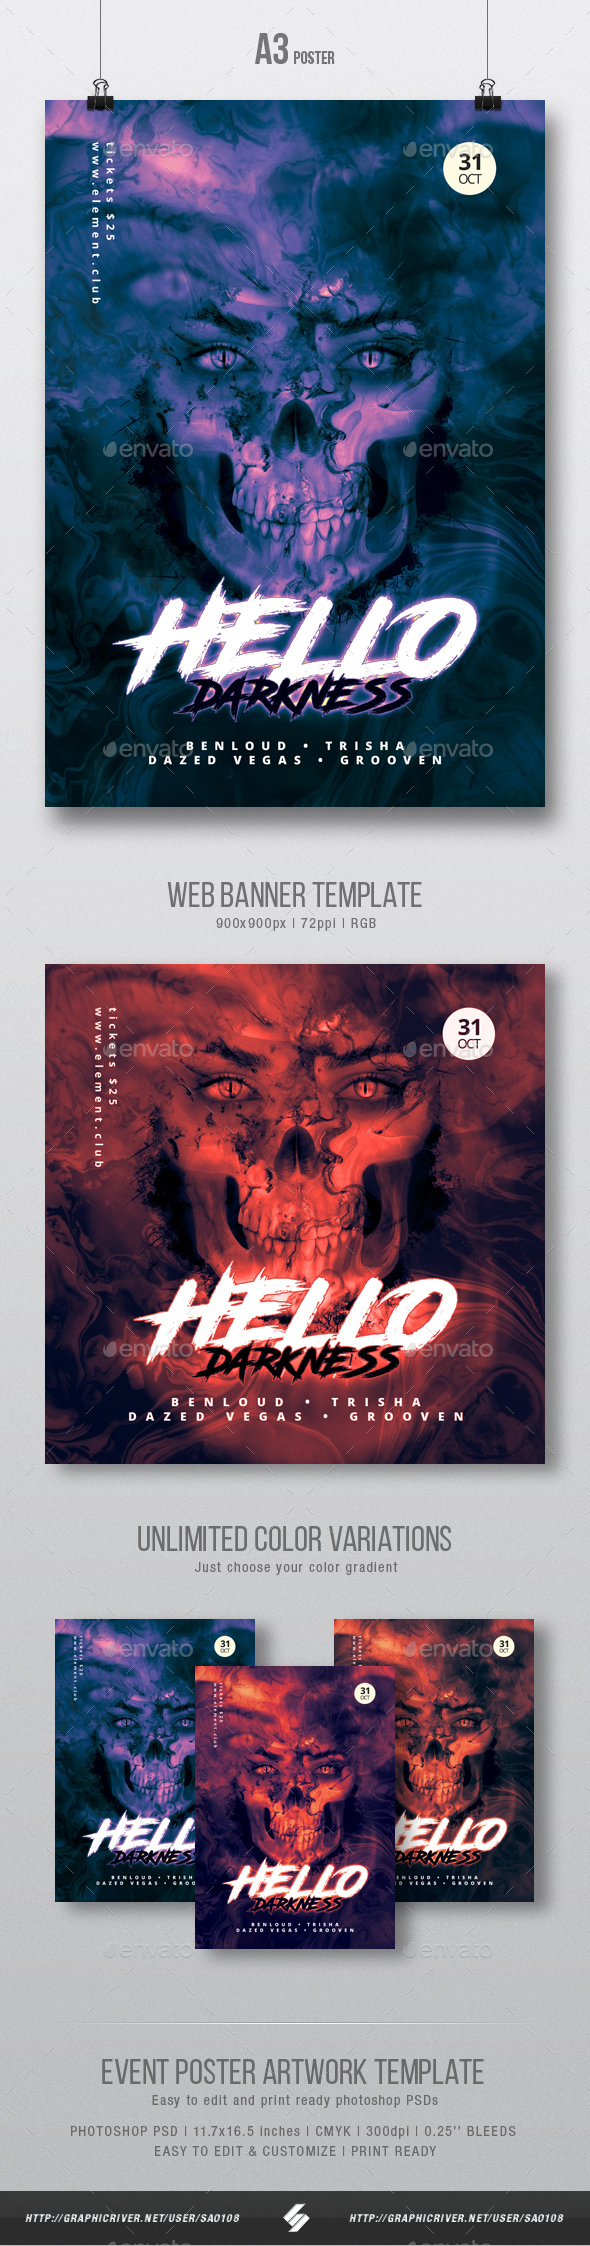 Hello Darkness - Party Flyer / Poster Artwork Template A3 - Clubs & Parties Events